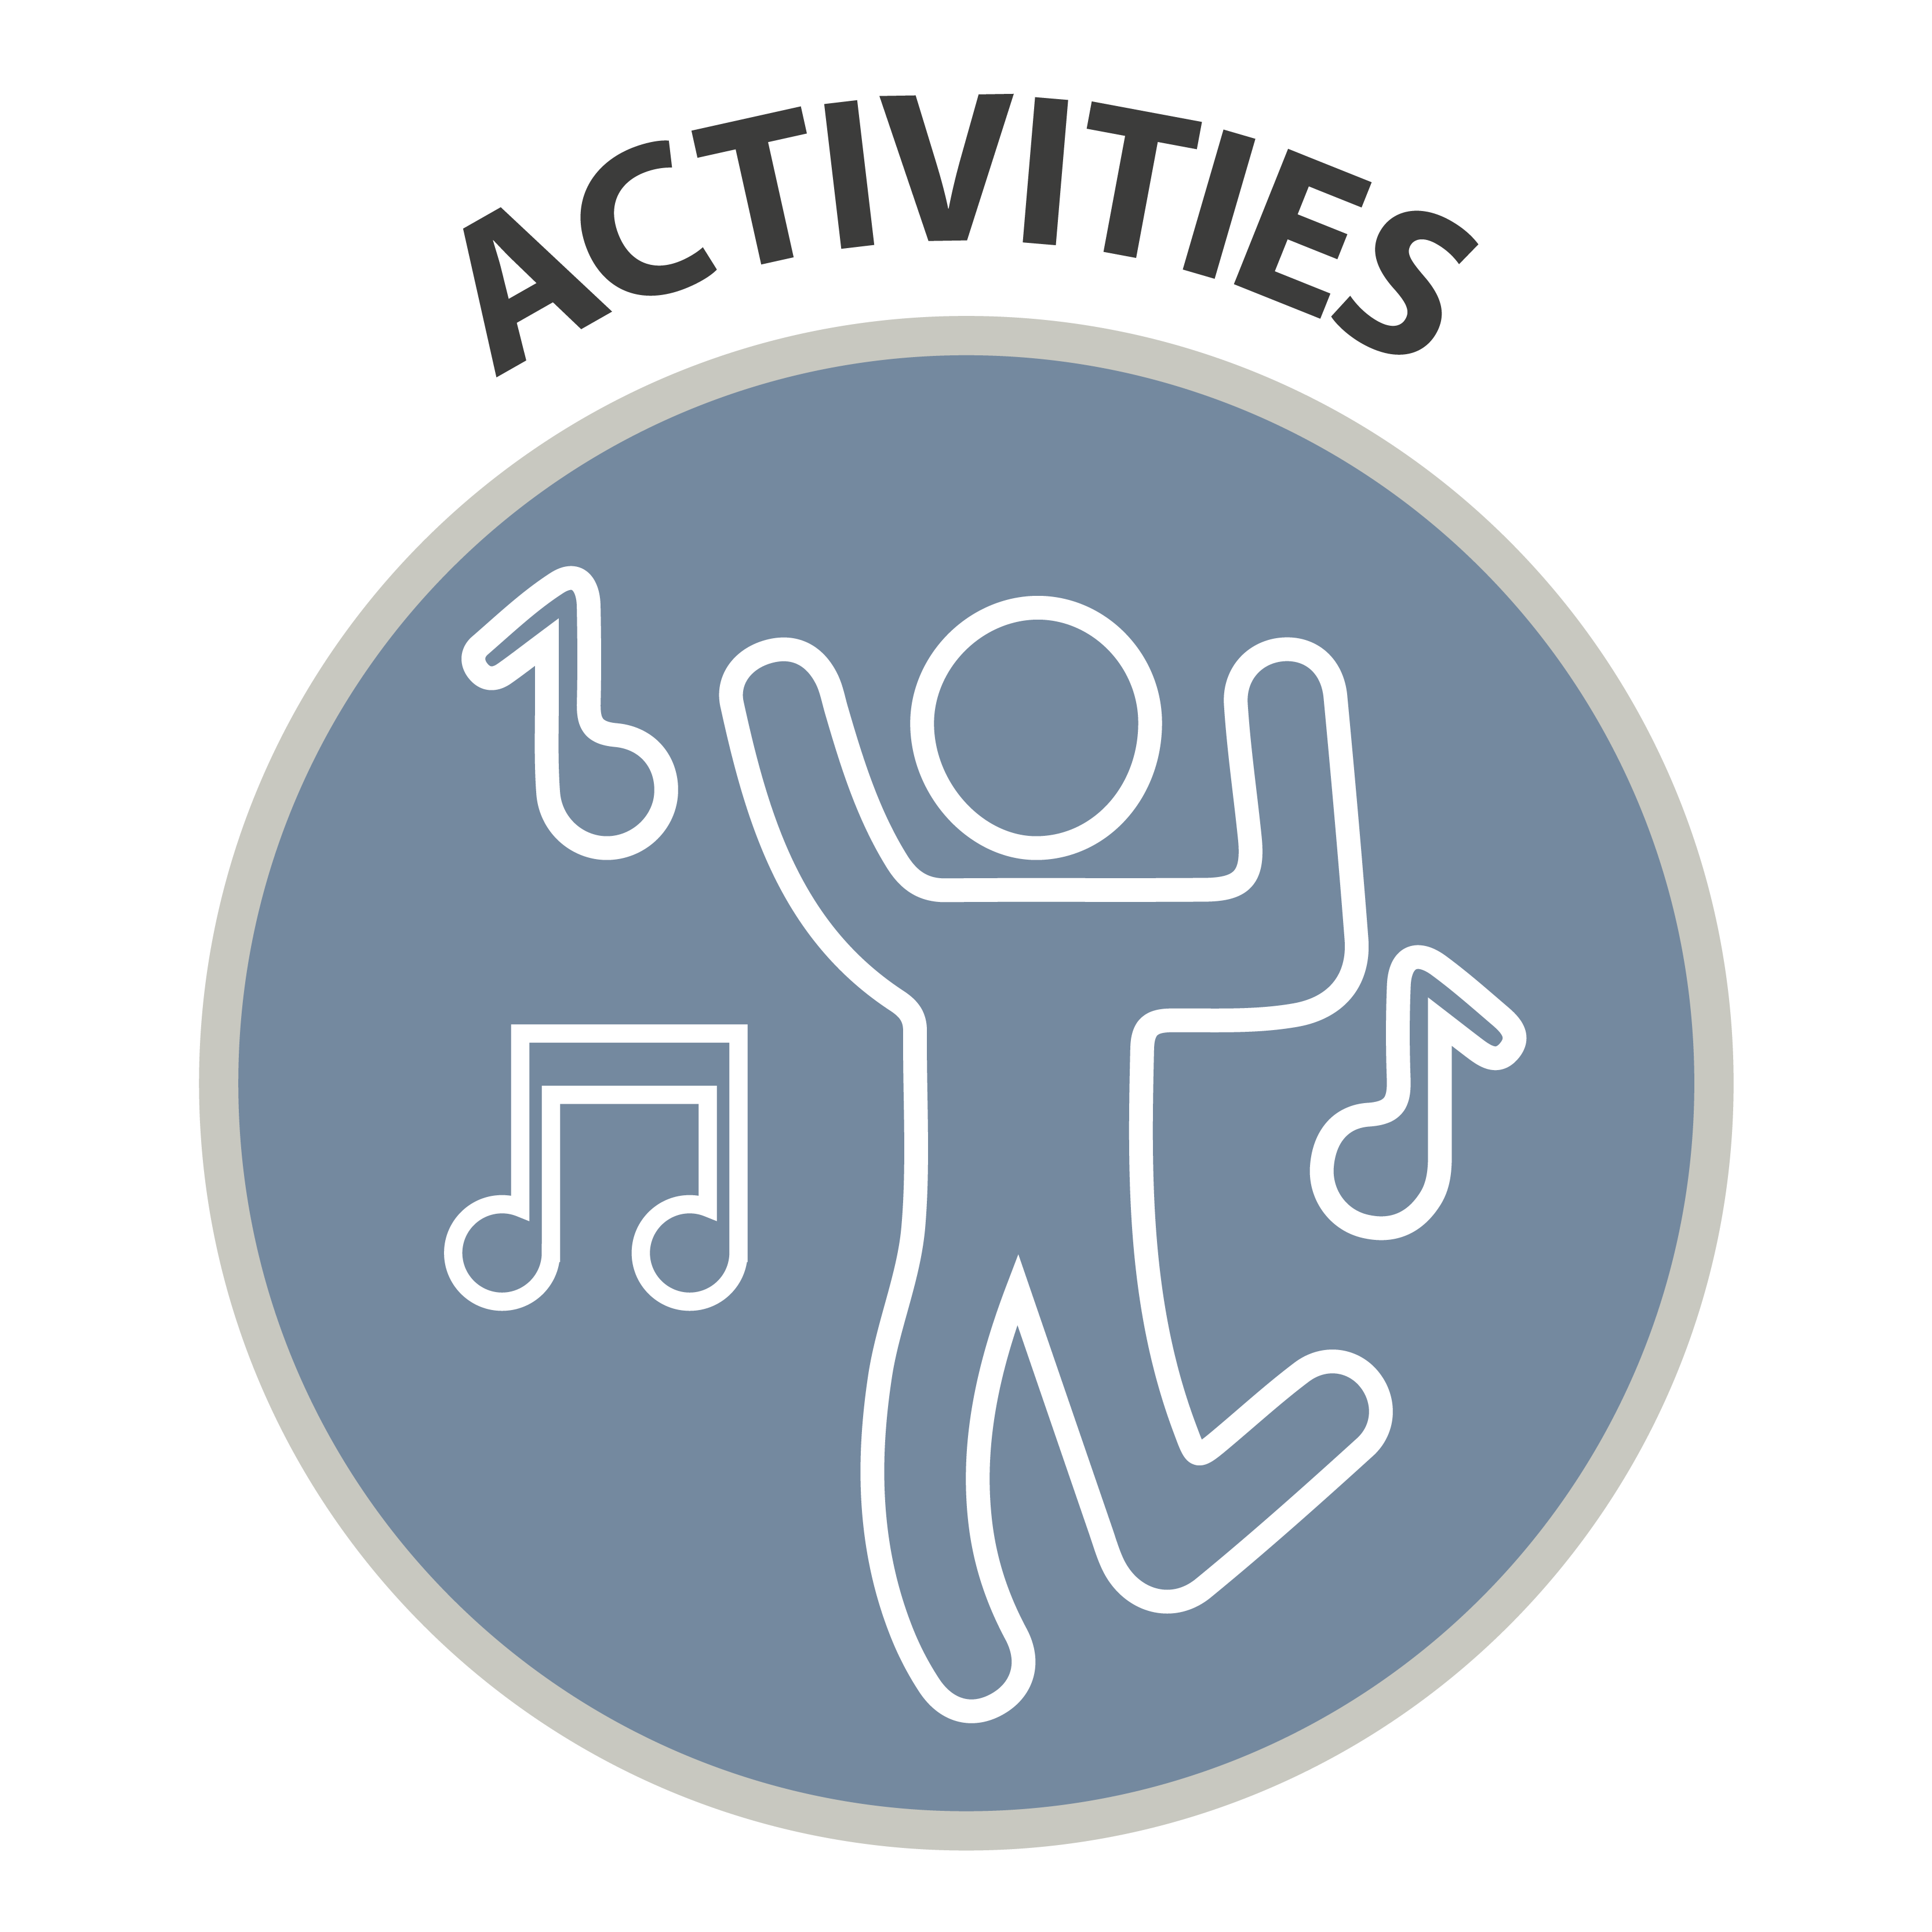 Activities - Icon of person dancing to music